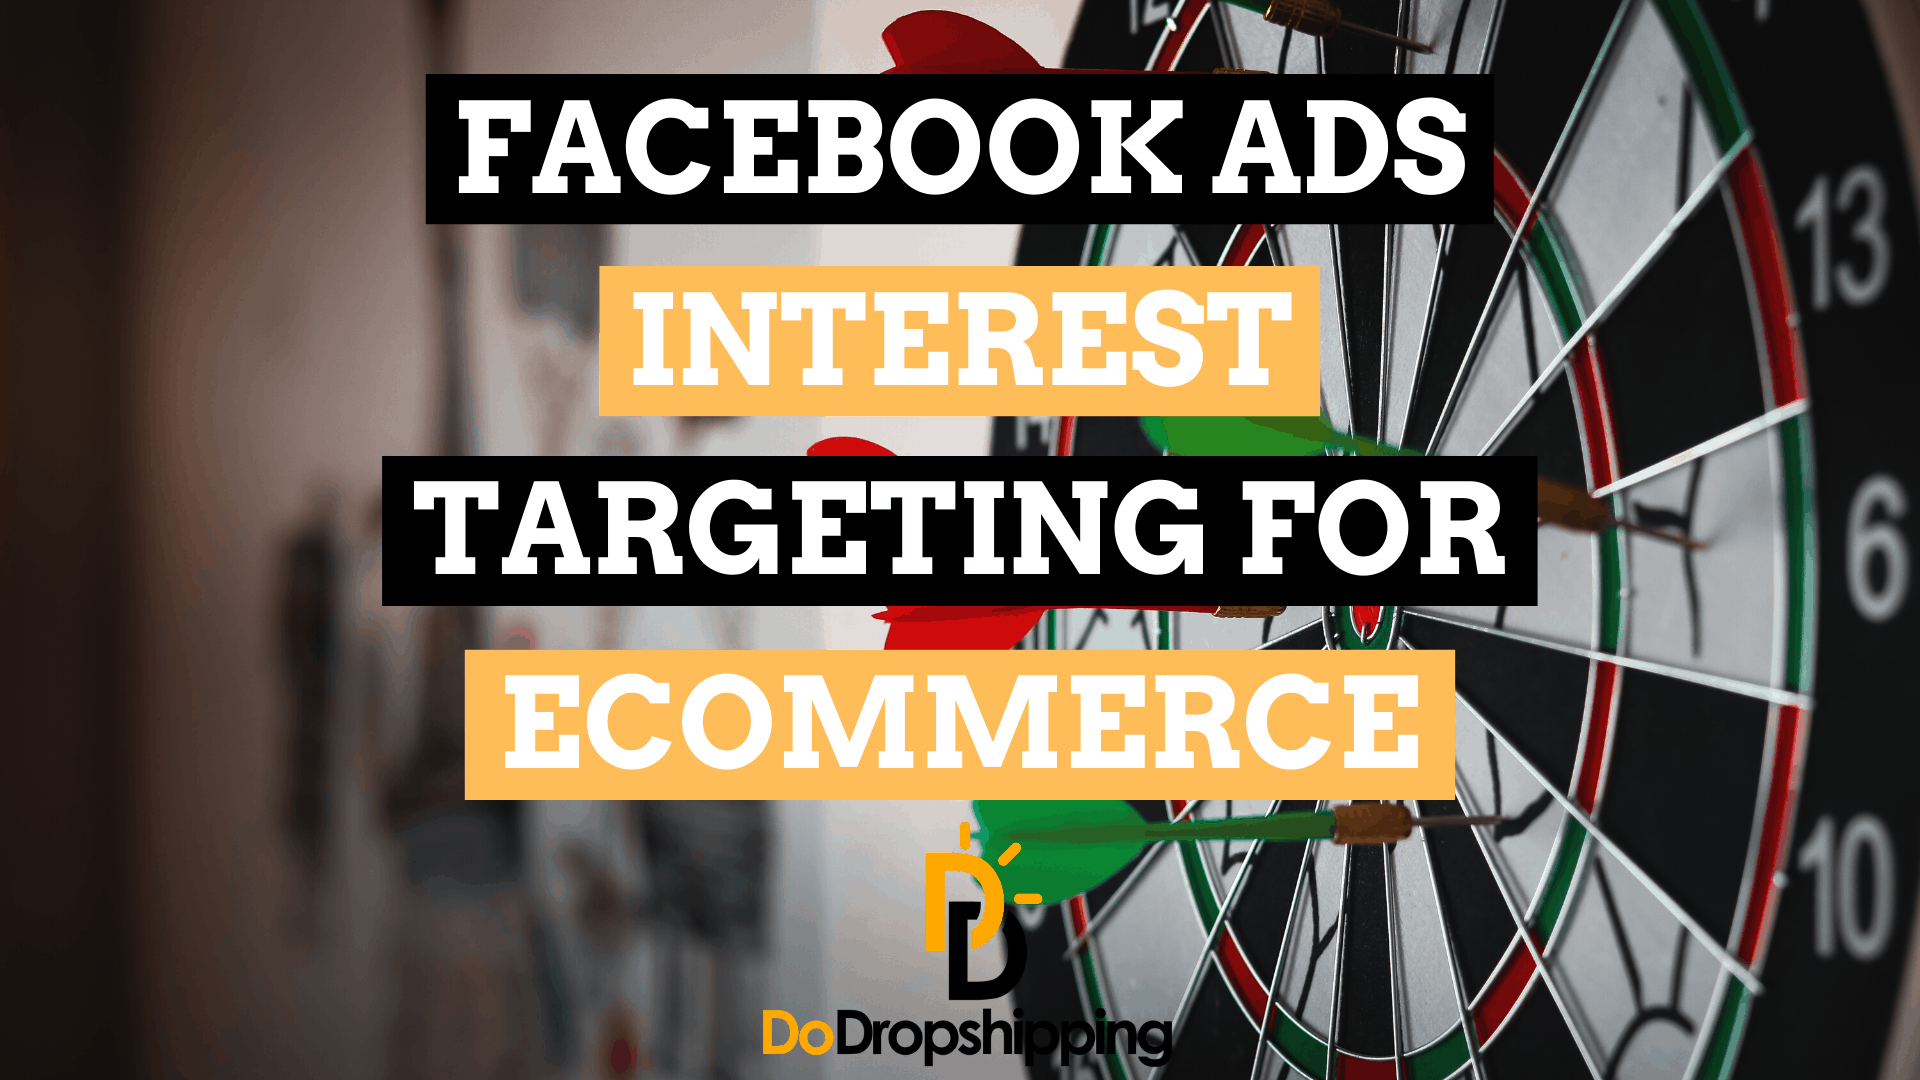 Facebook Ads Interest Targeting for Ecommerce: An Easy Guide